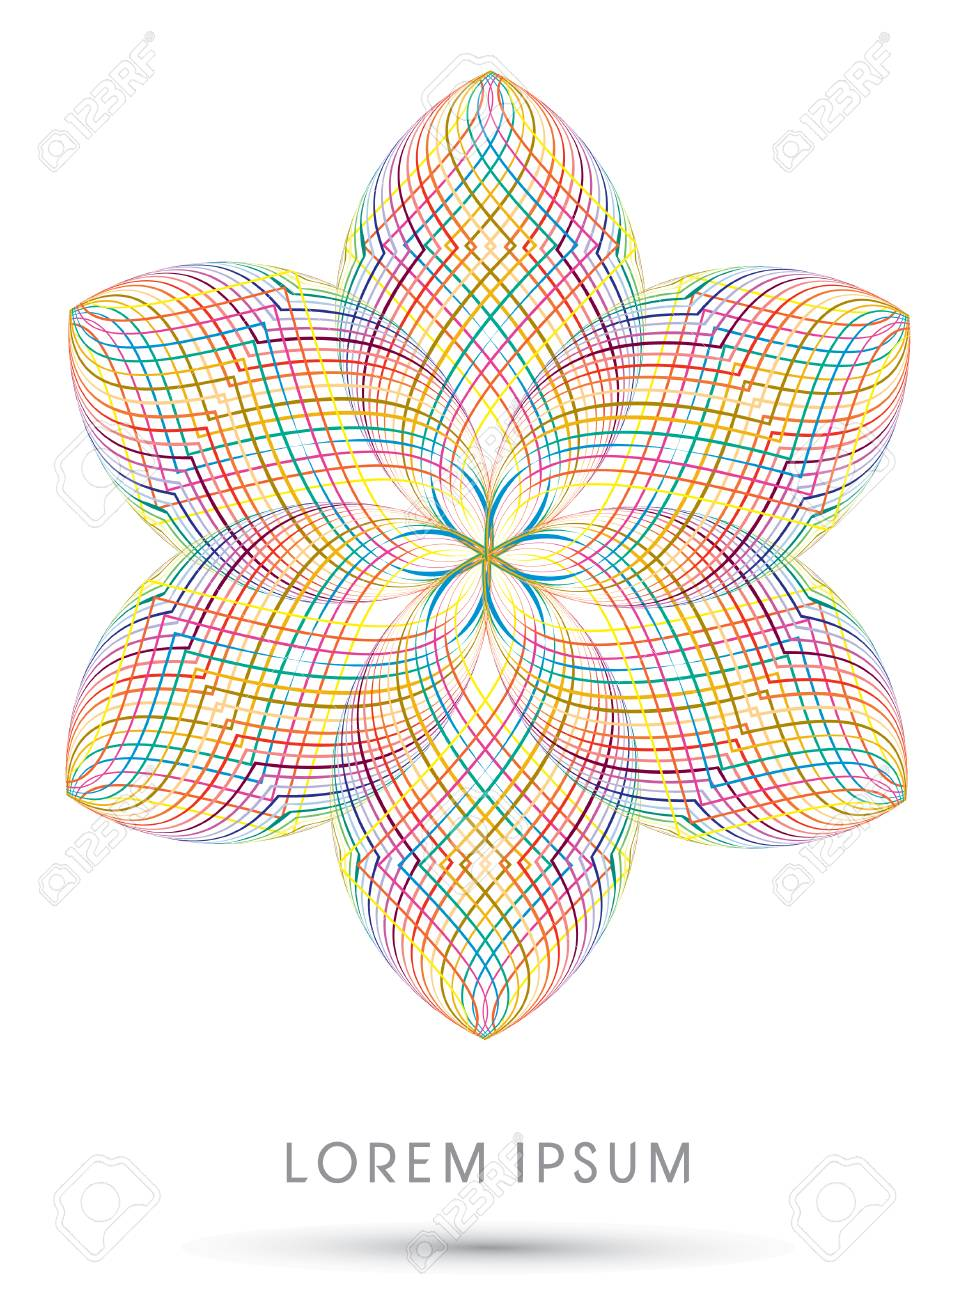 Abstract Lotus Blossom Flower Designed Using Colorful Line